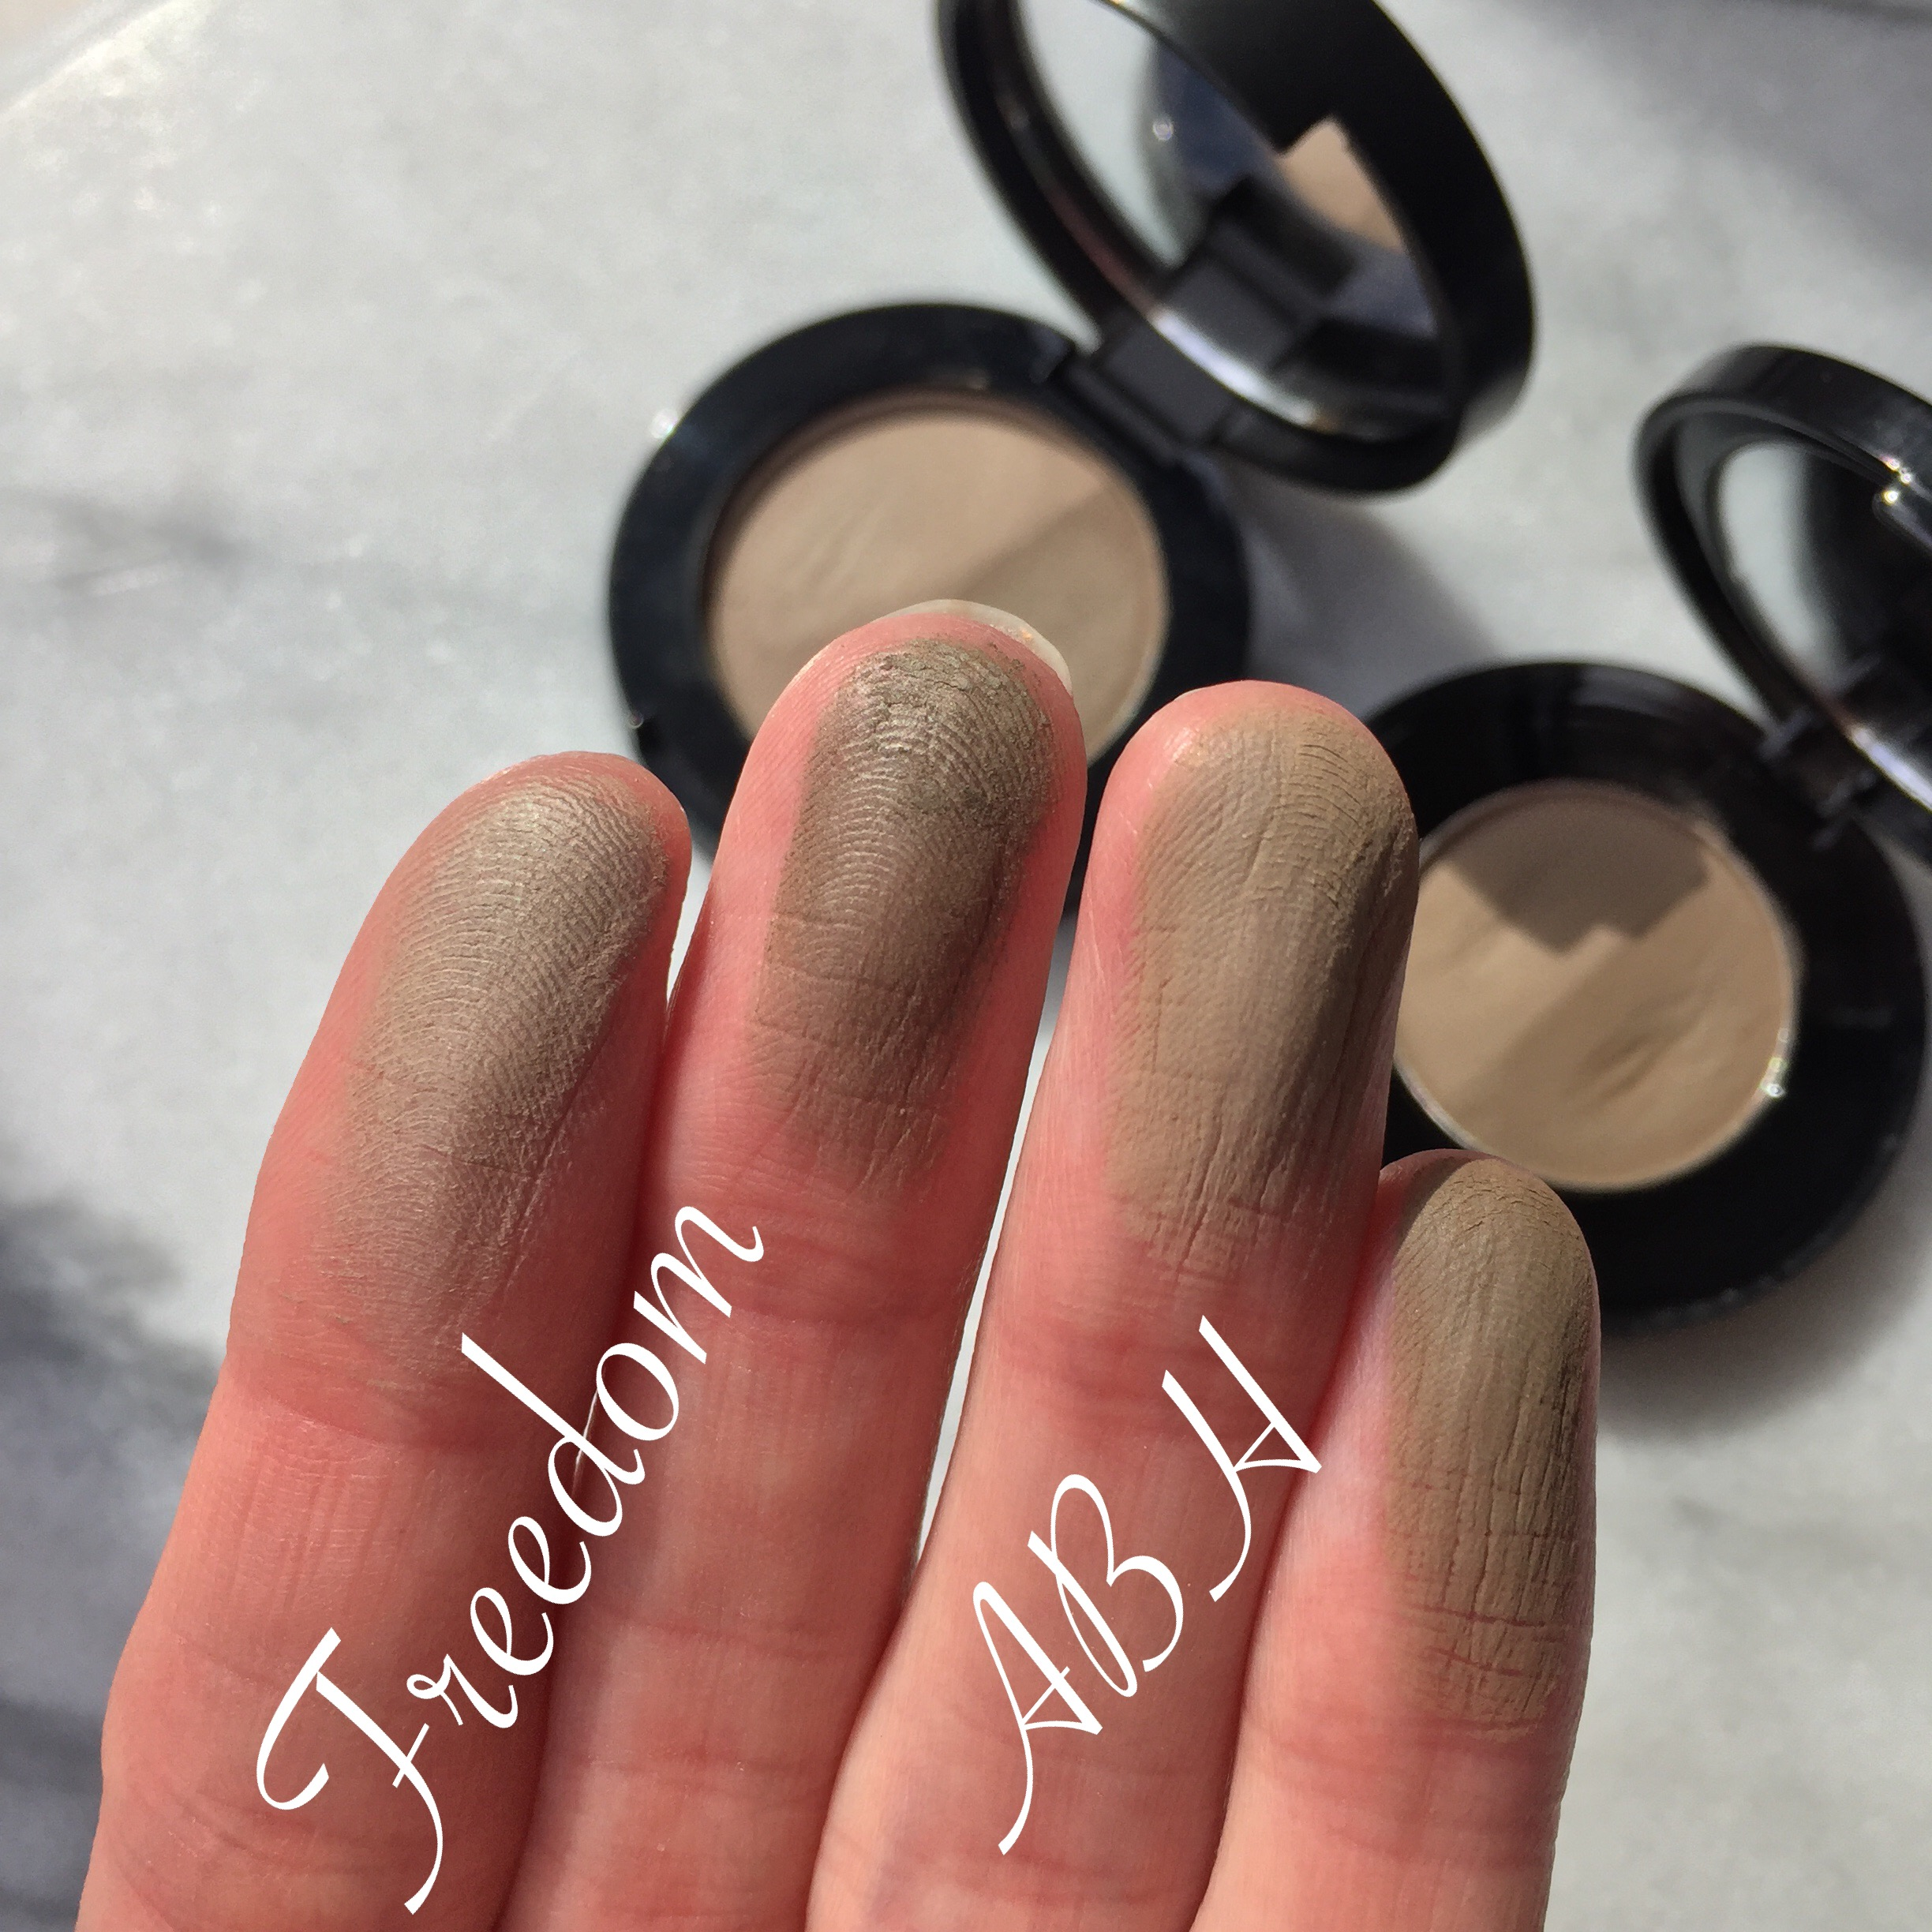 Brow Powder Duo by Anastasia Beverly Hills #8